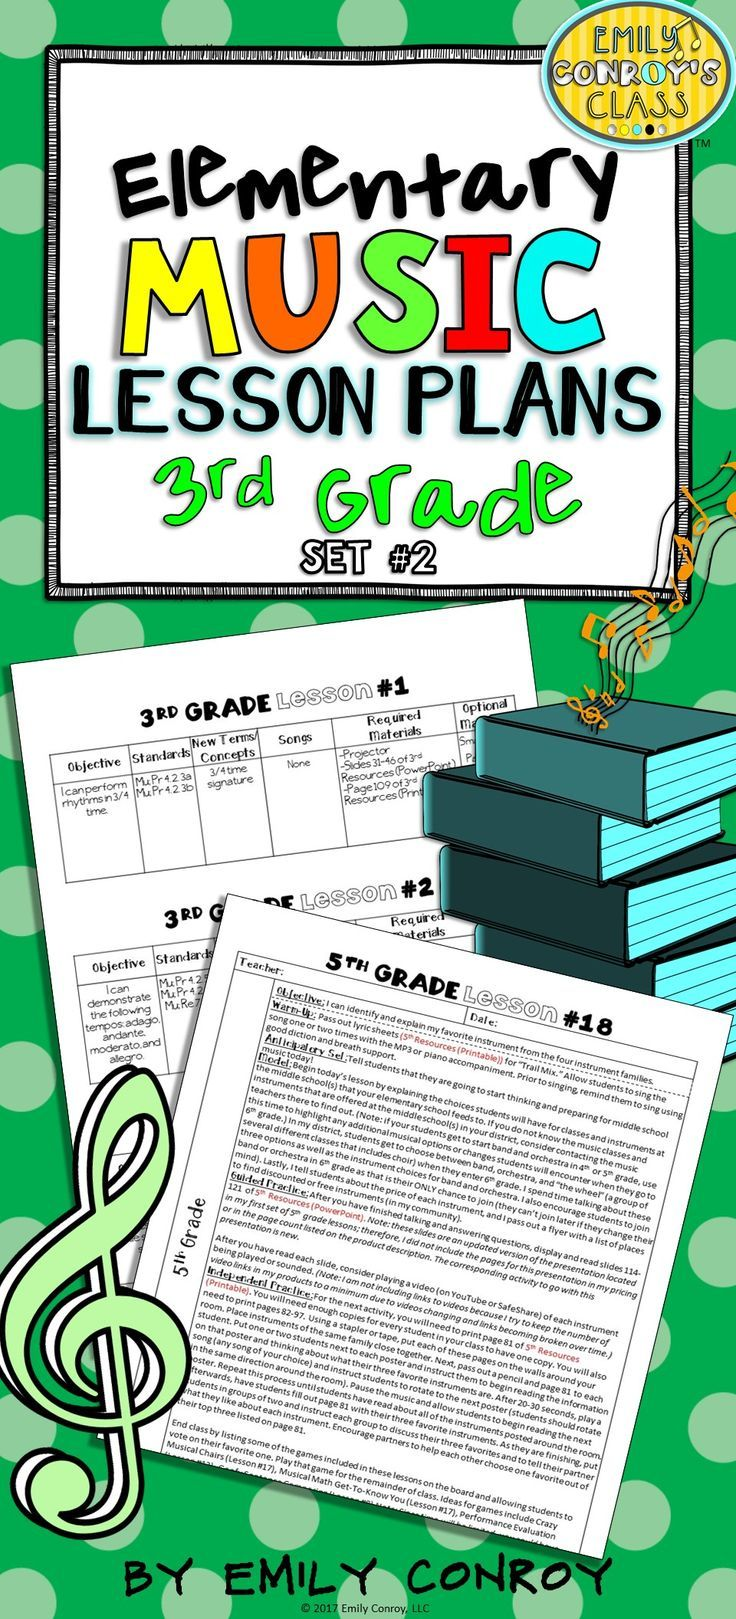 3rd Grade Music Lesson Plans (Set #2) | Worksheets, Activities and ...